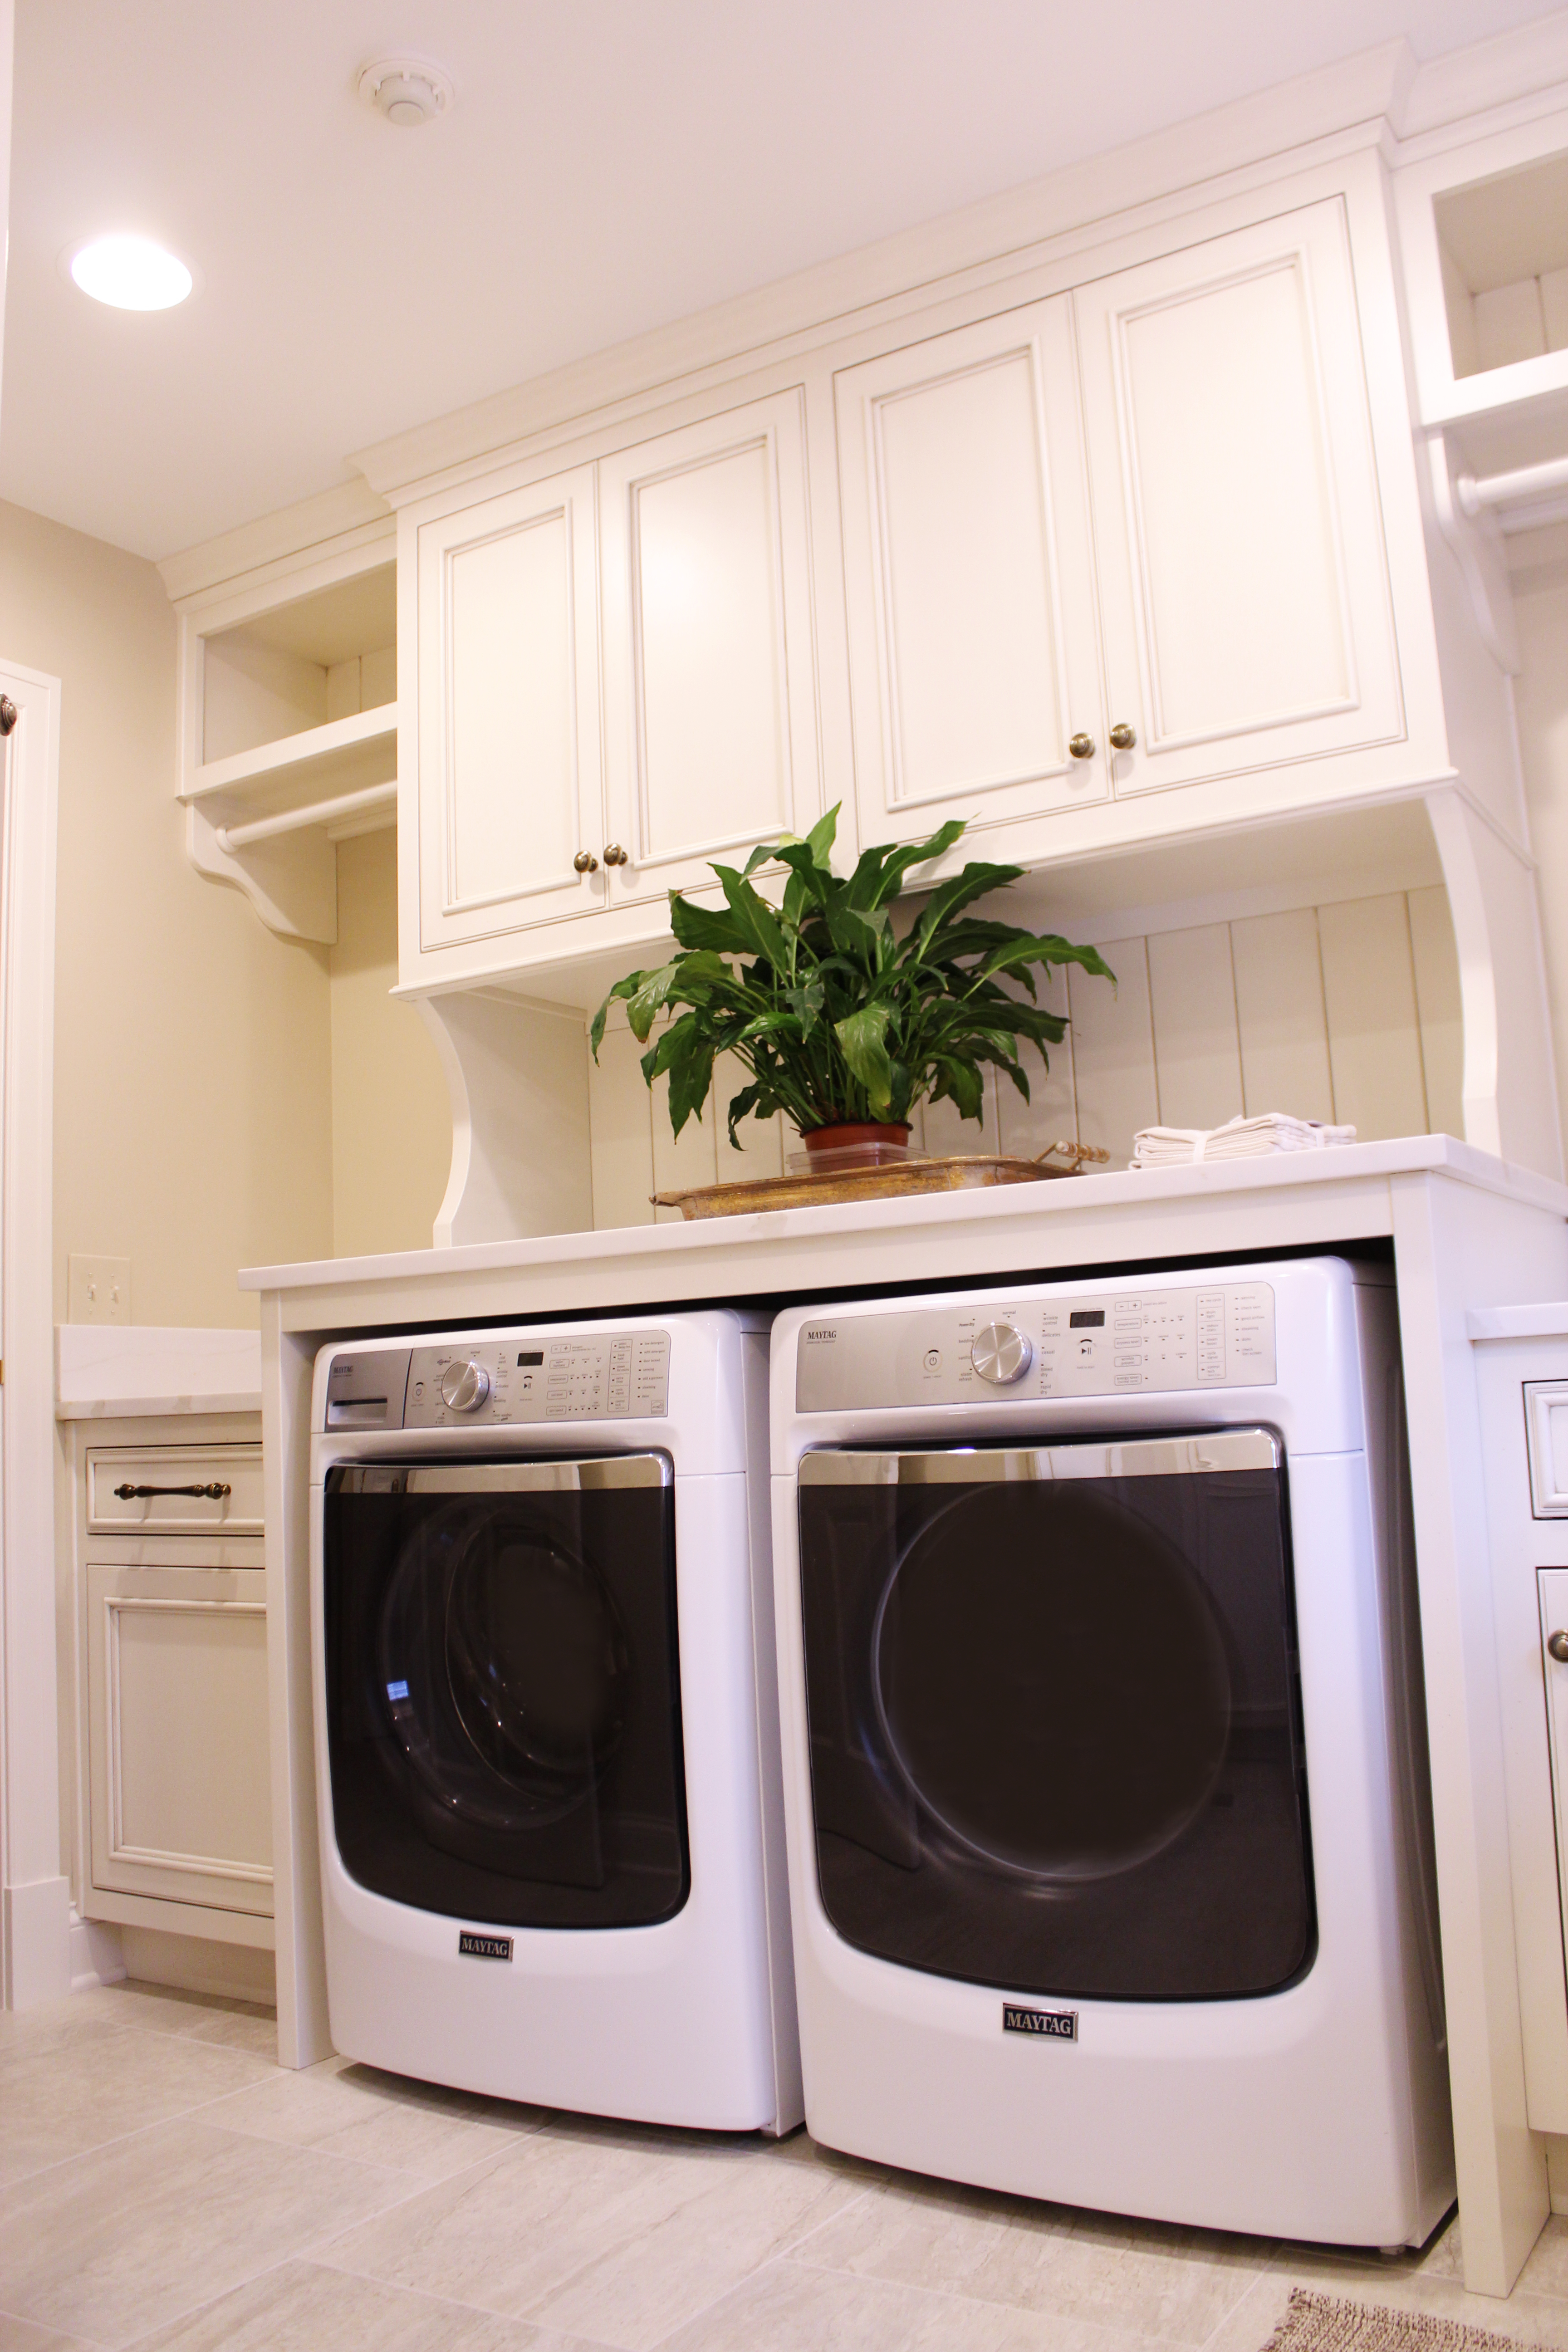 Laundry Cabinets, Evansville IN on Laundry Cabinets  id=20780